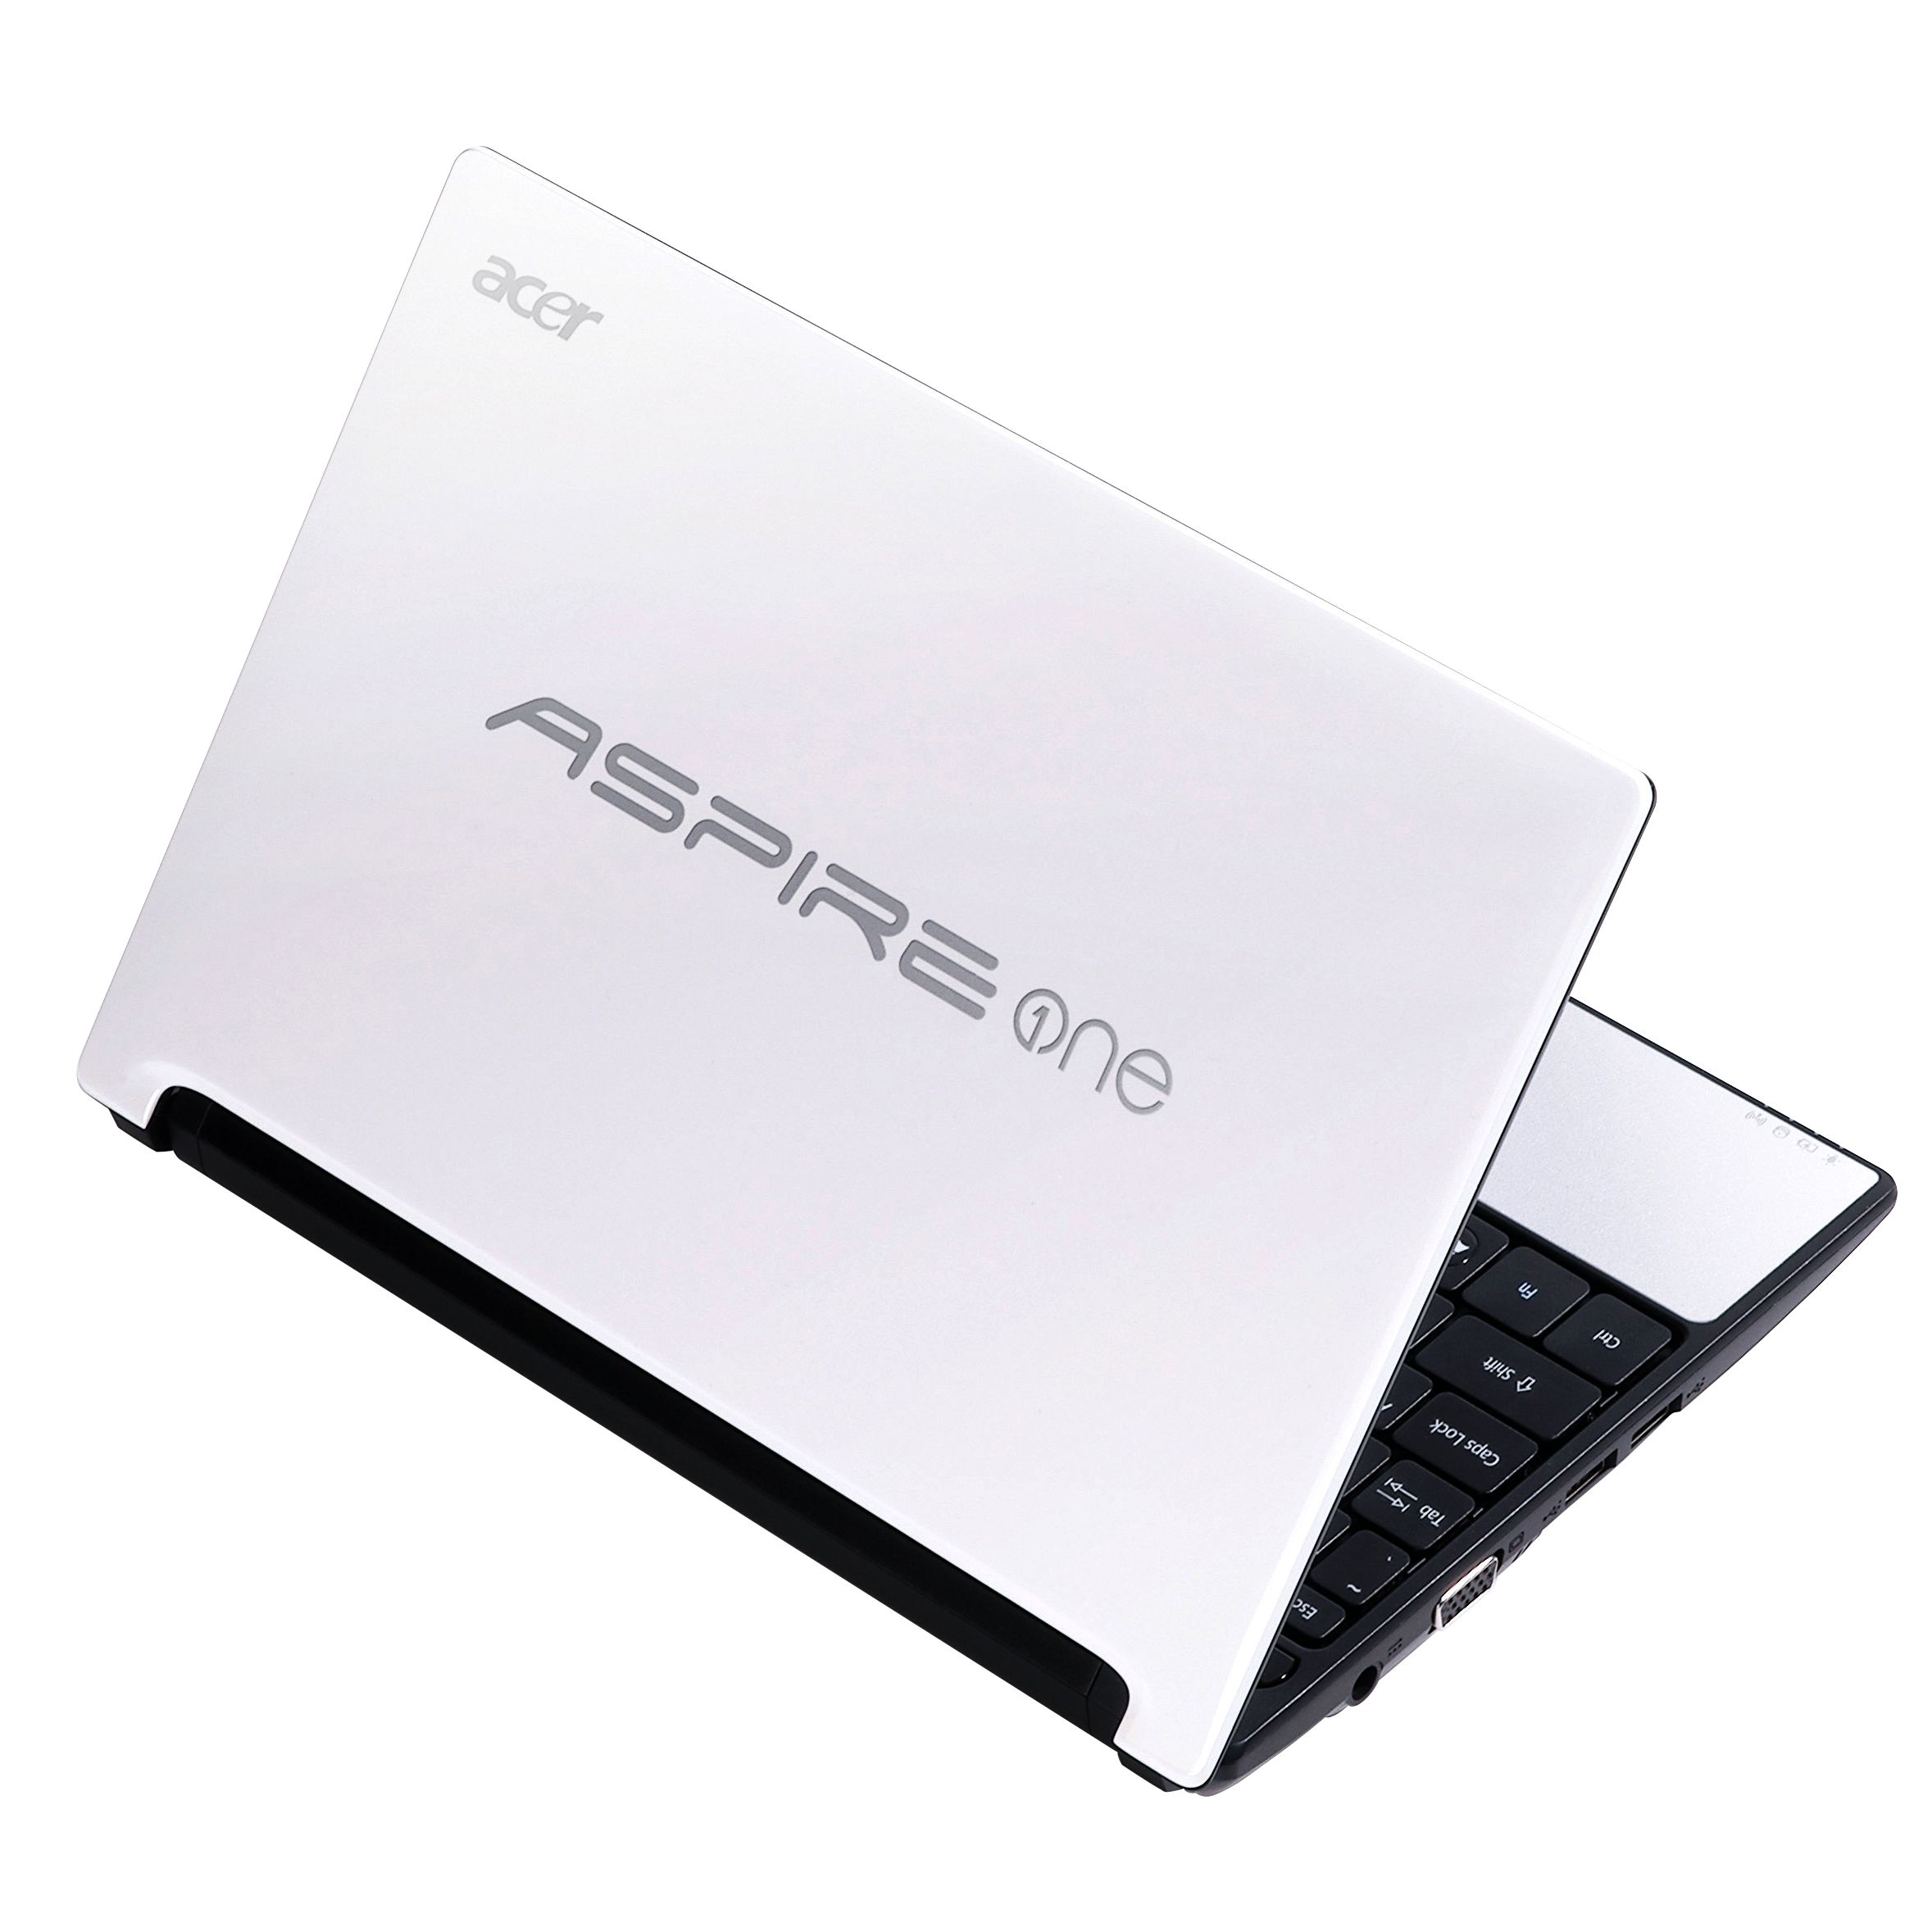 Acer Aspire One D255 Netbook, 1.66GHz with 10.1 Inch Display, White/Silver at JohnLewis